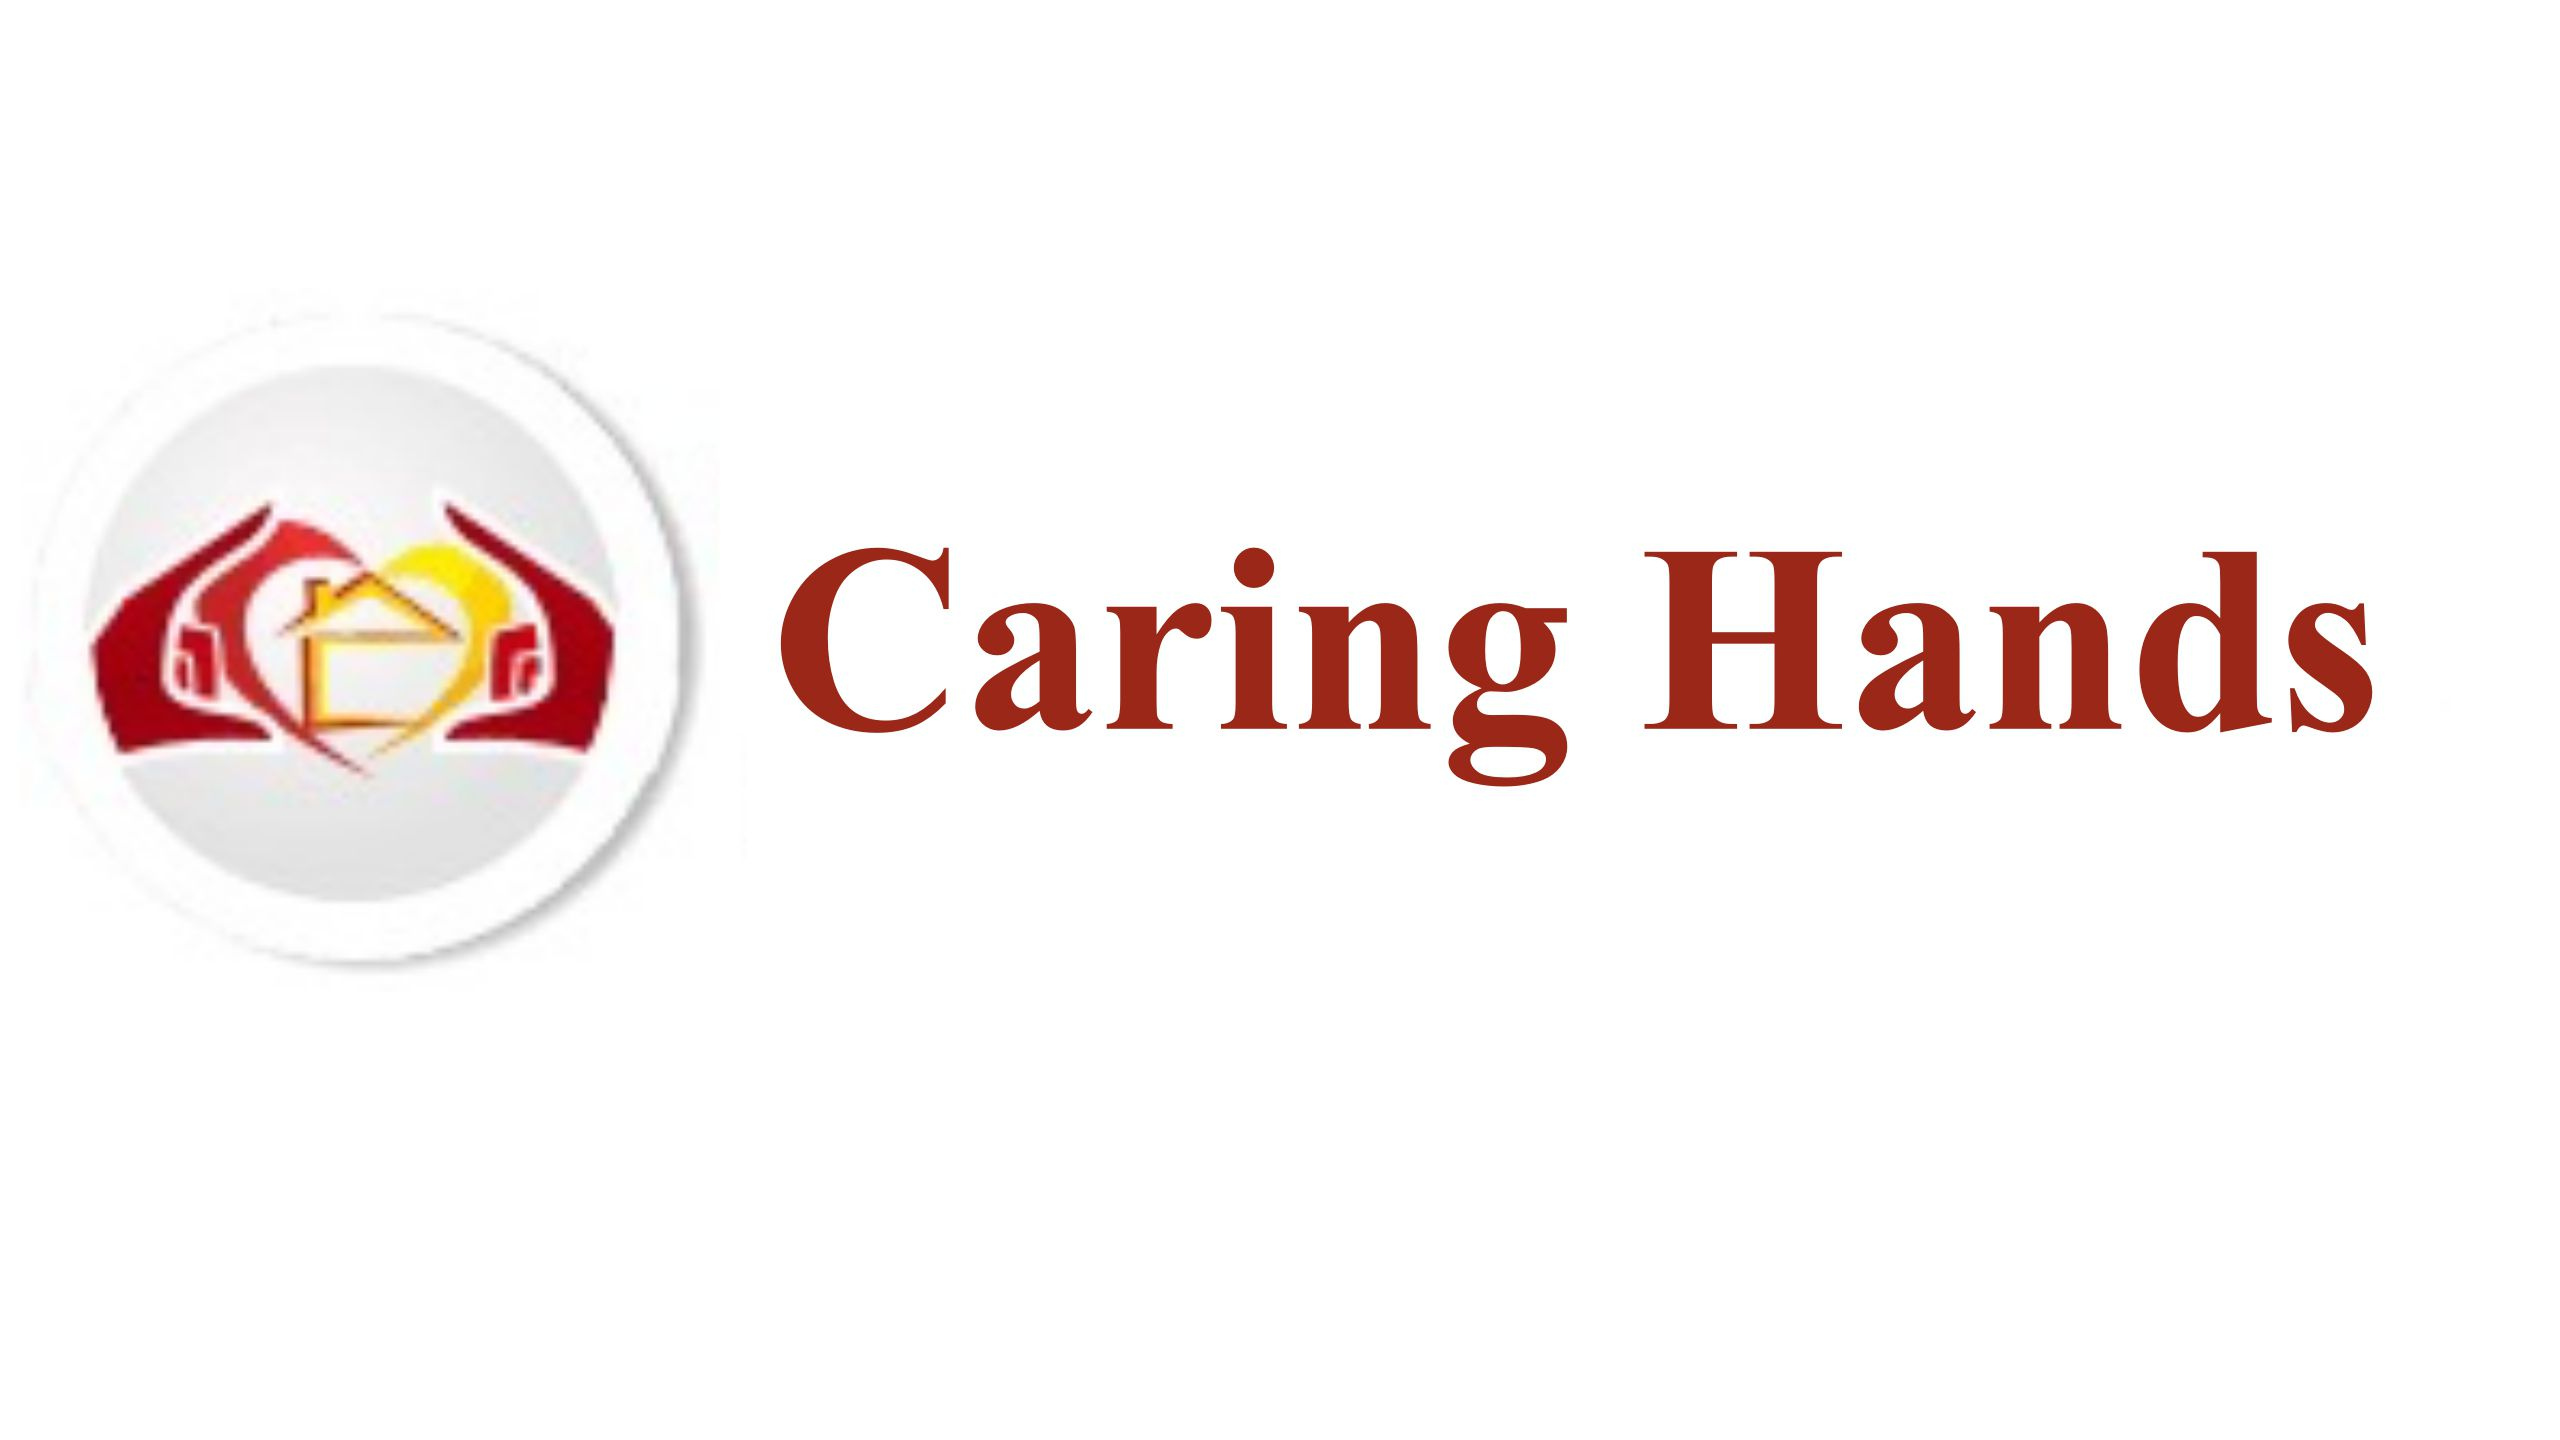 Home Care Service Home Care Personal Care Professional Caregiver Caring Hands